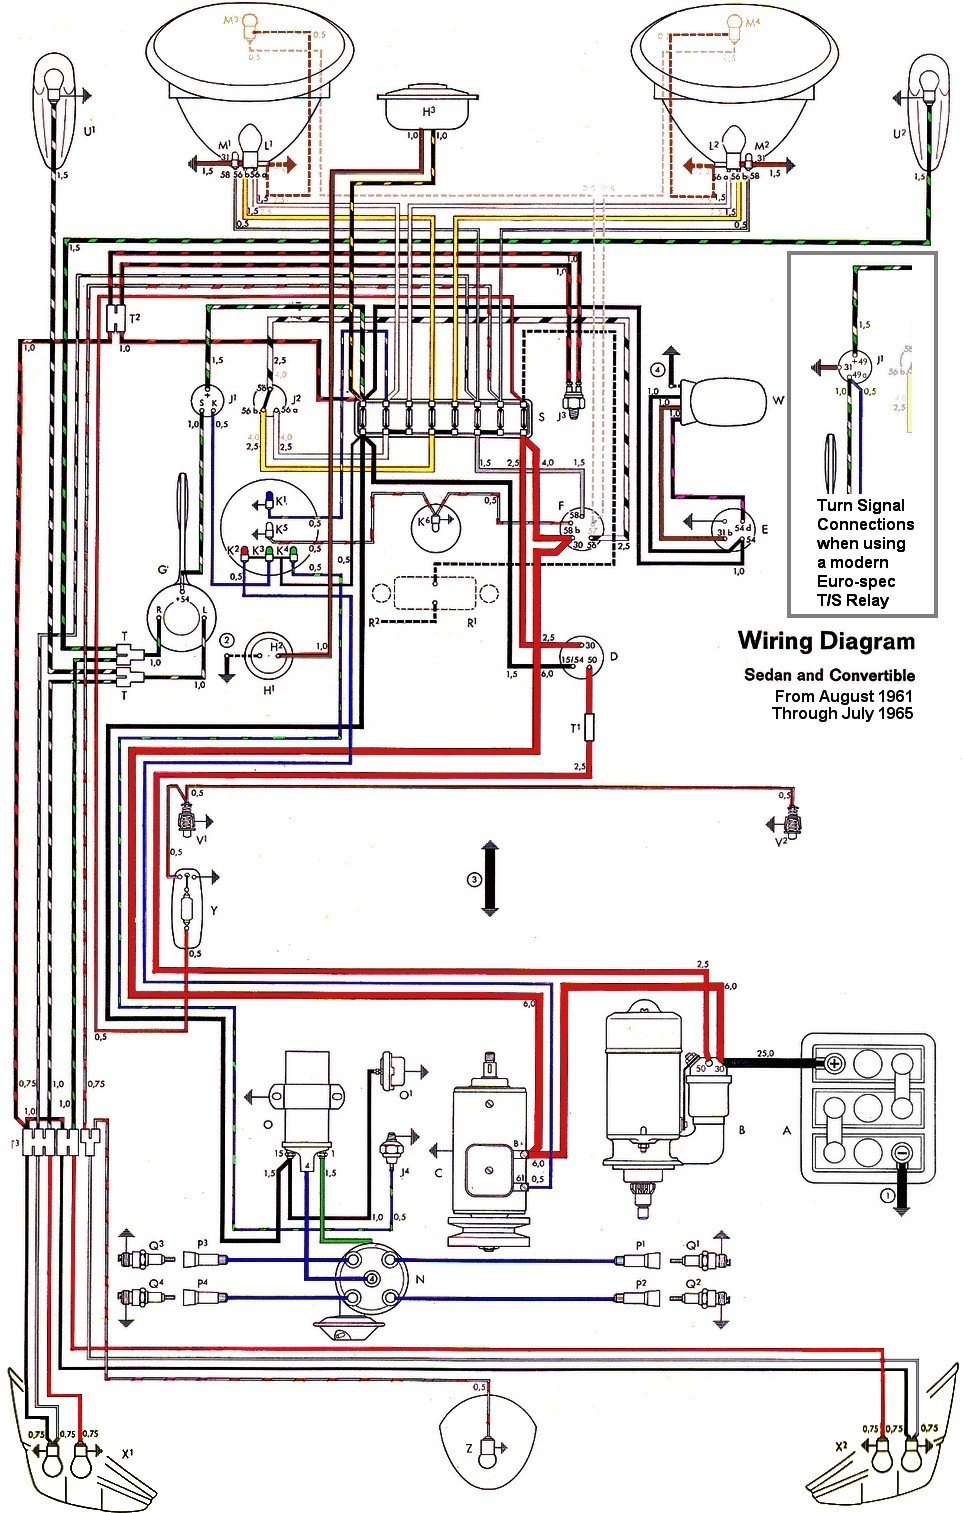 thesamba com type 1 wiring diagrams rh thesamba com 1974 Super Beetle  Wiring Diagram 73 vw beetle tail light wiring diagram